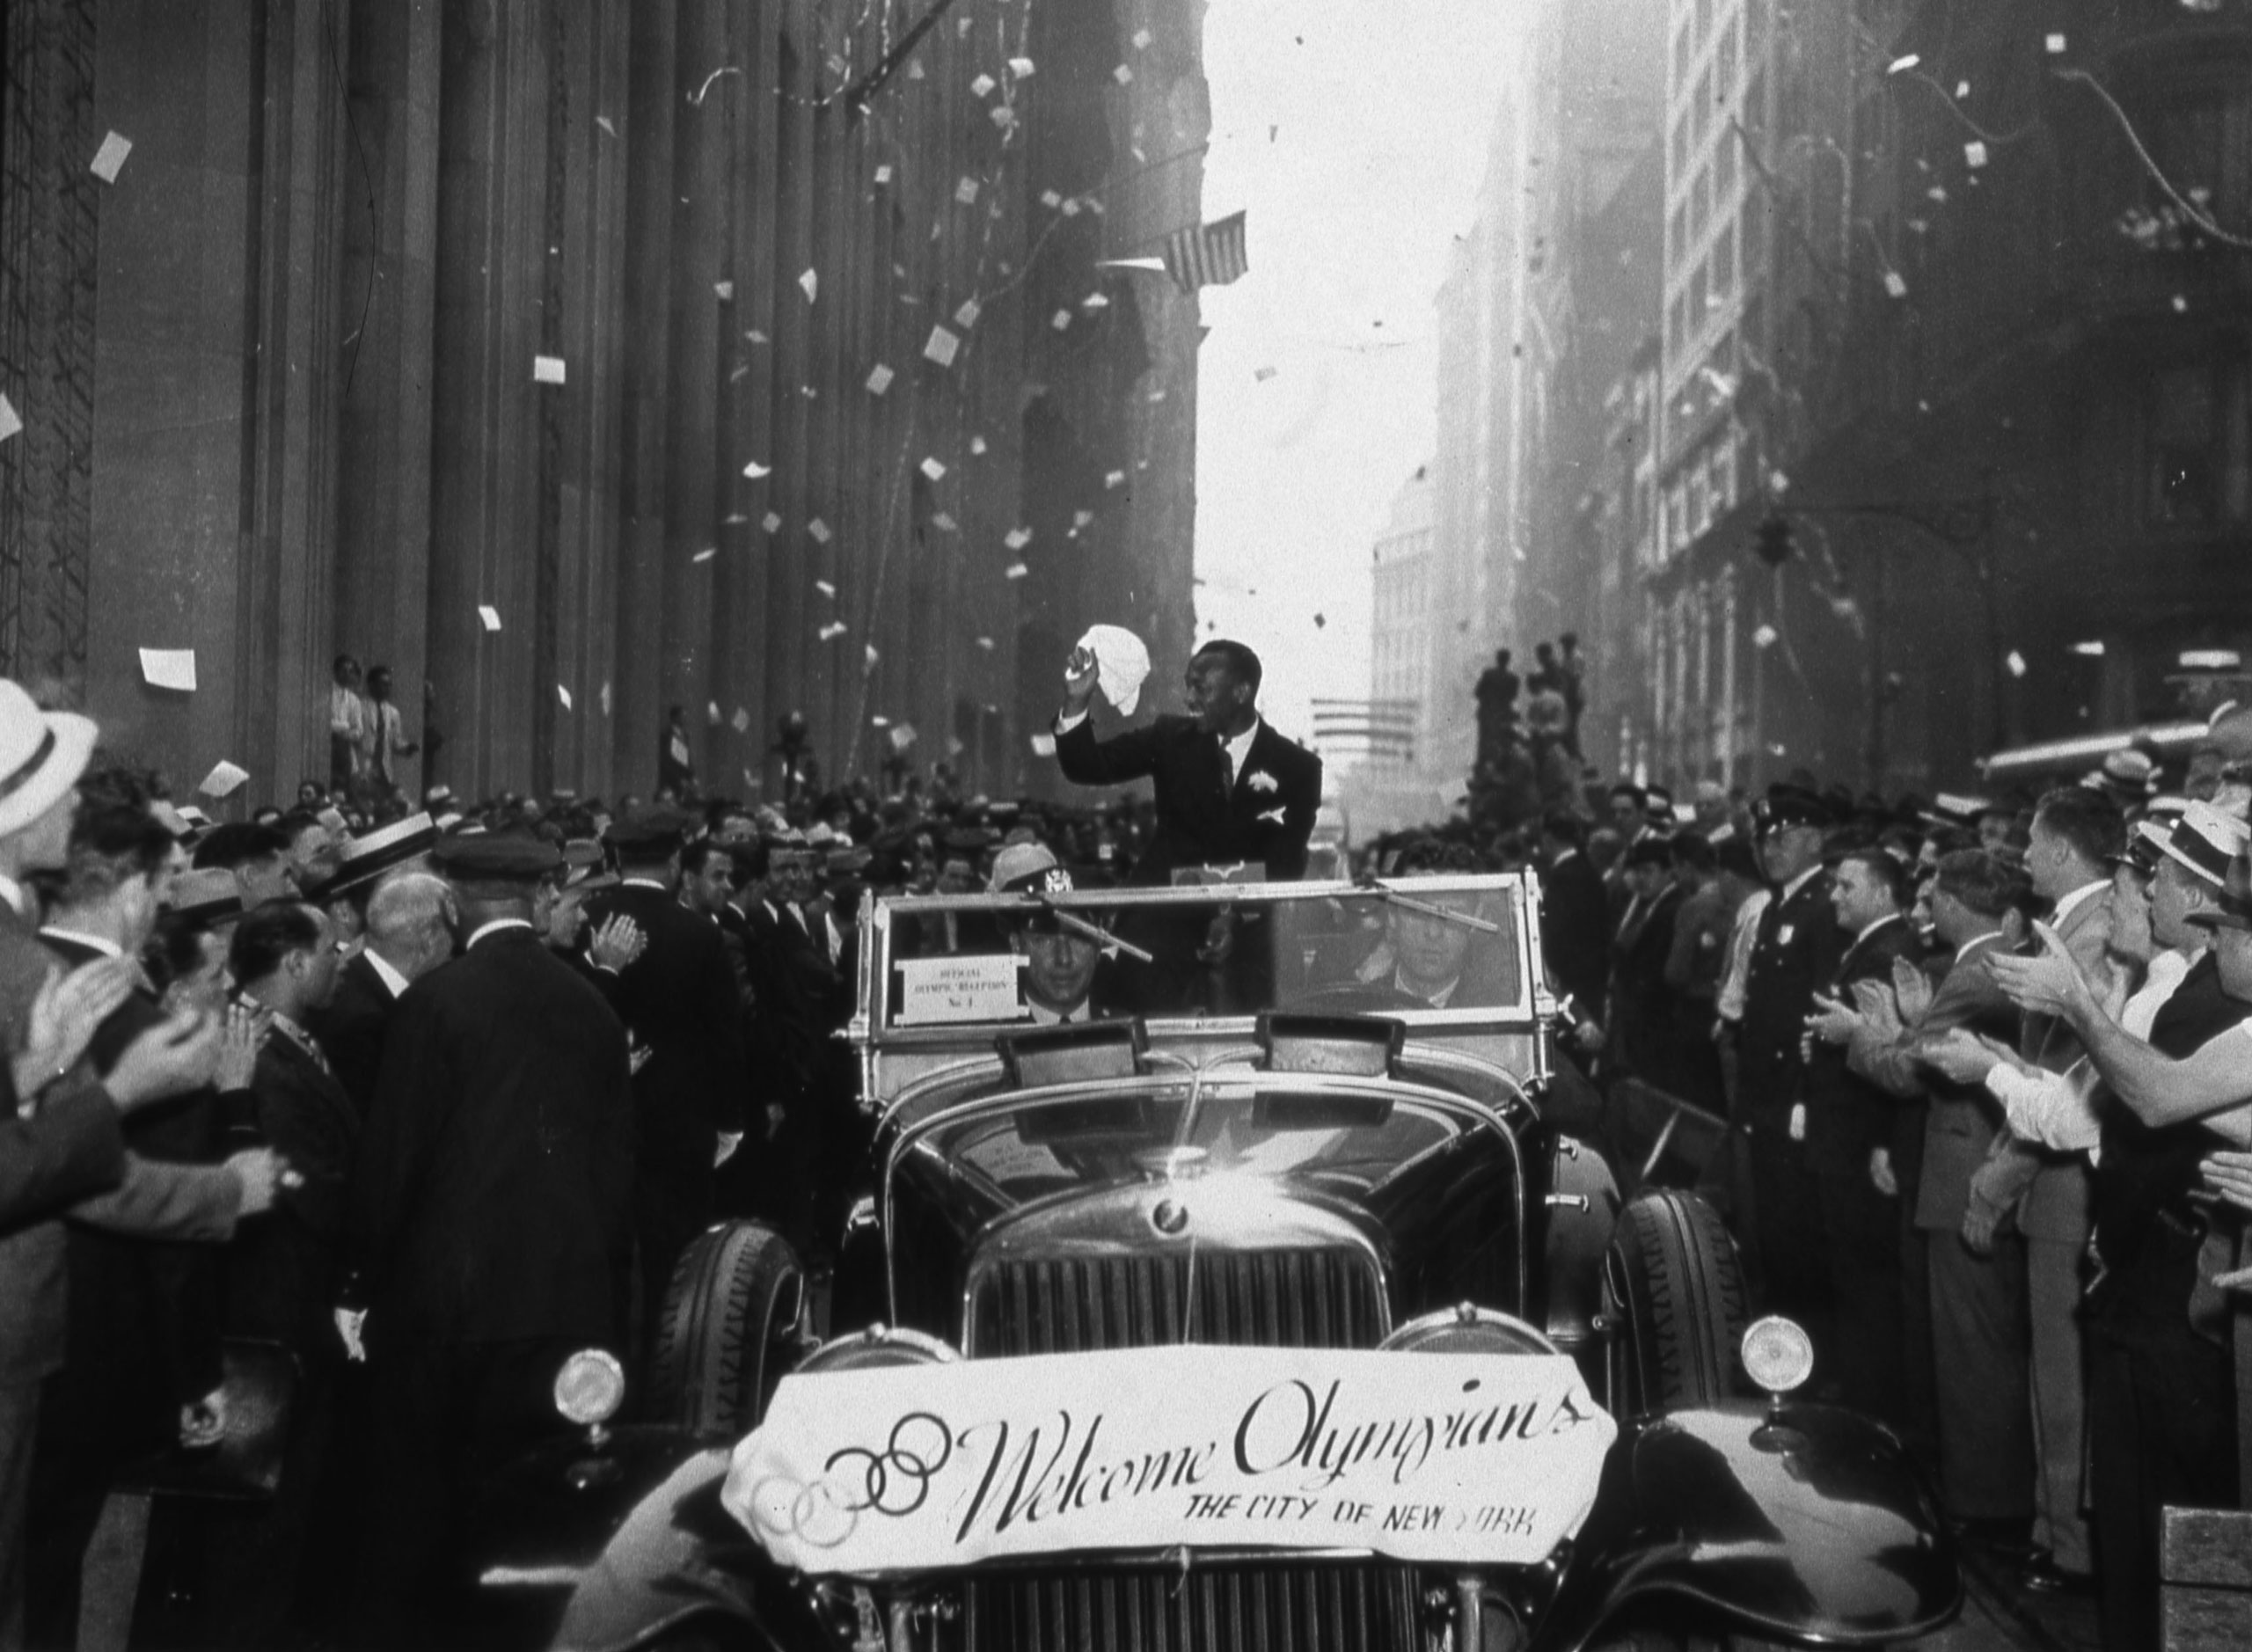 American athlete and Olympic gold medal winner Jesse Owens waves at fans  during a ticker tape parade in honor of the U.S. athletes who competed in the Berlin Olympic Games, in New York, on Sept. 3, 1936.